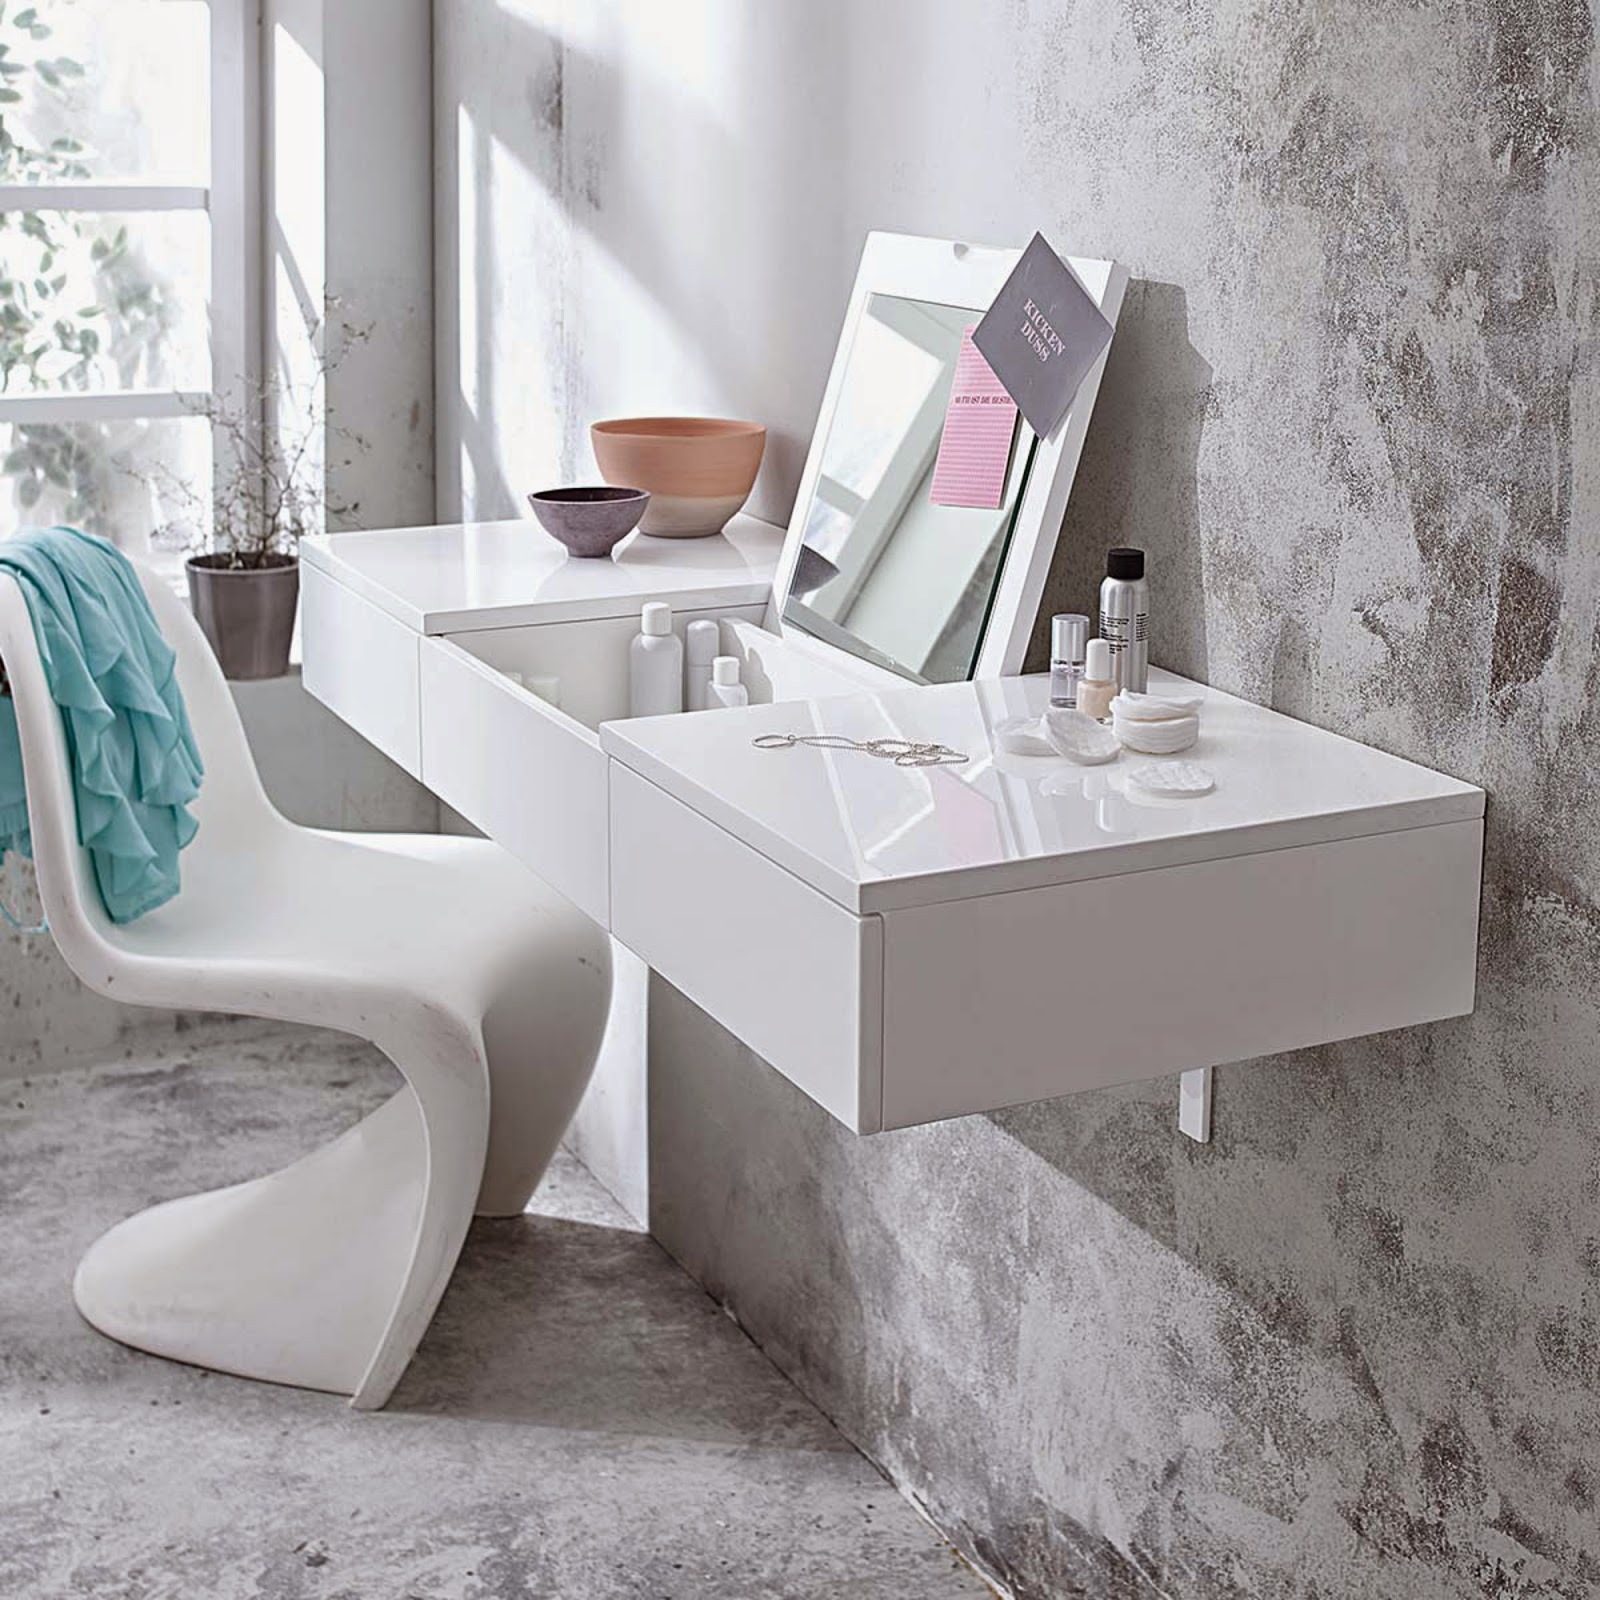 Wall Mounted Modern White Dressing Table Ideas With Folding Mirror